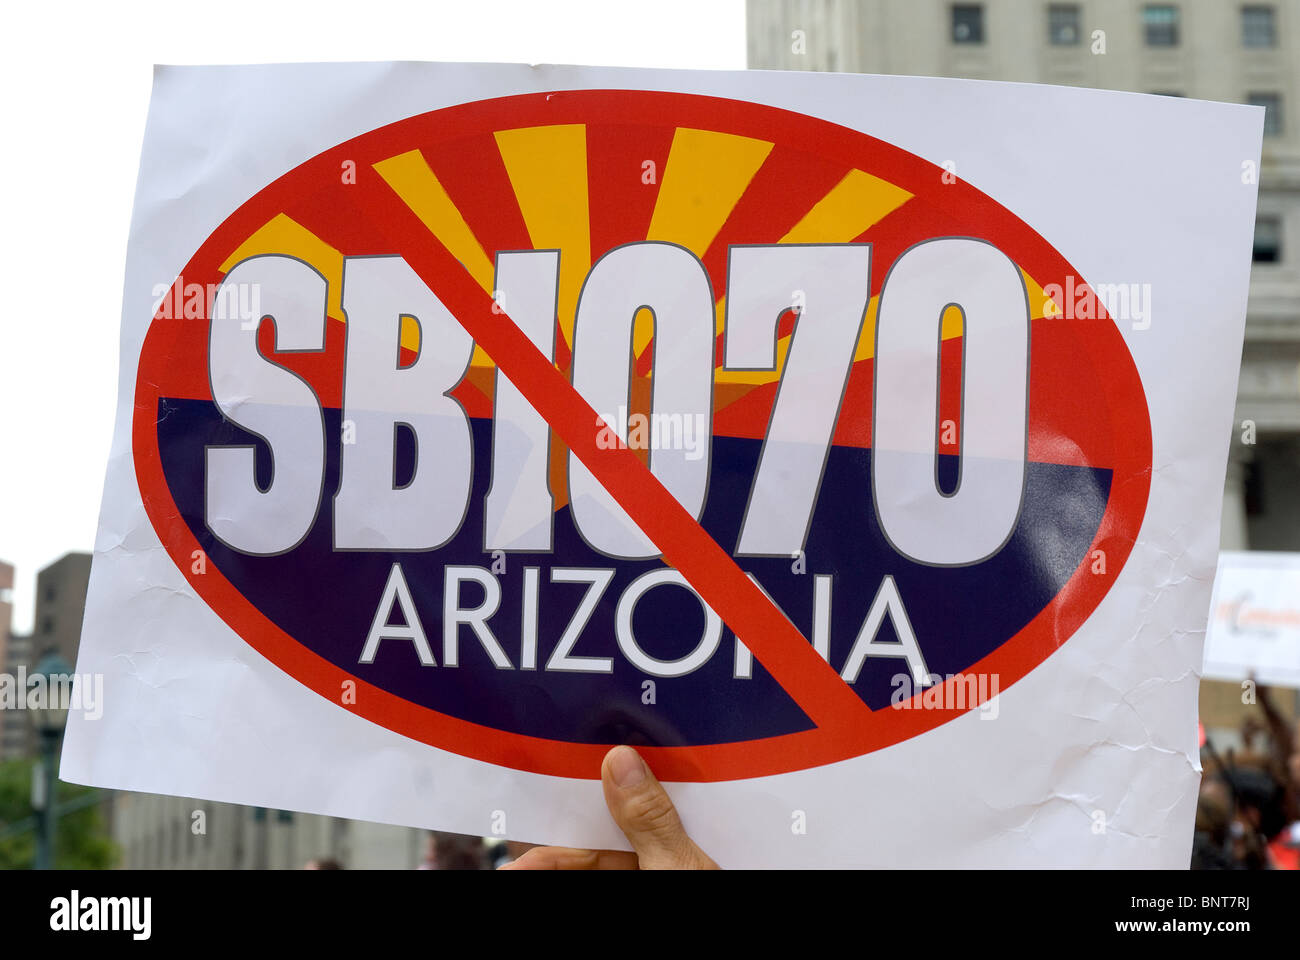 The 'We Are All Arizona' march in NYC on July 29th, Brooklyn-Manhattan, Protesting the SB 1070 Arizona Law. - Stock Image